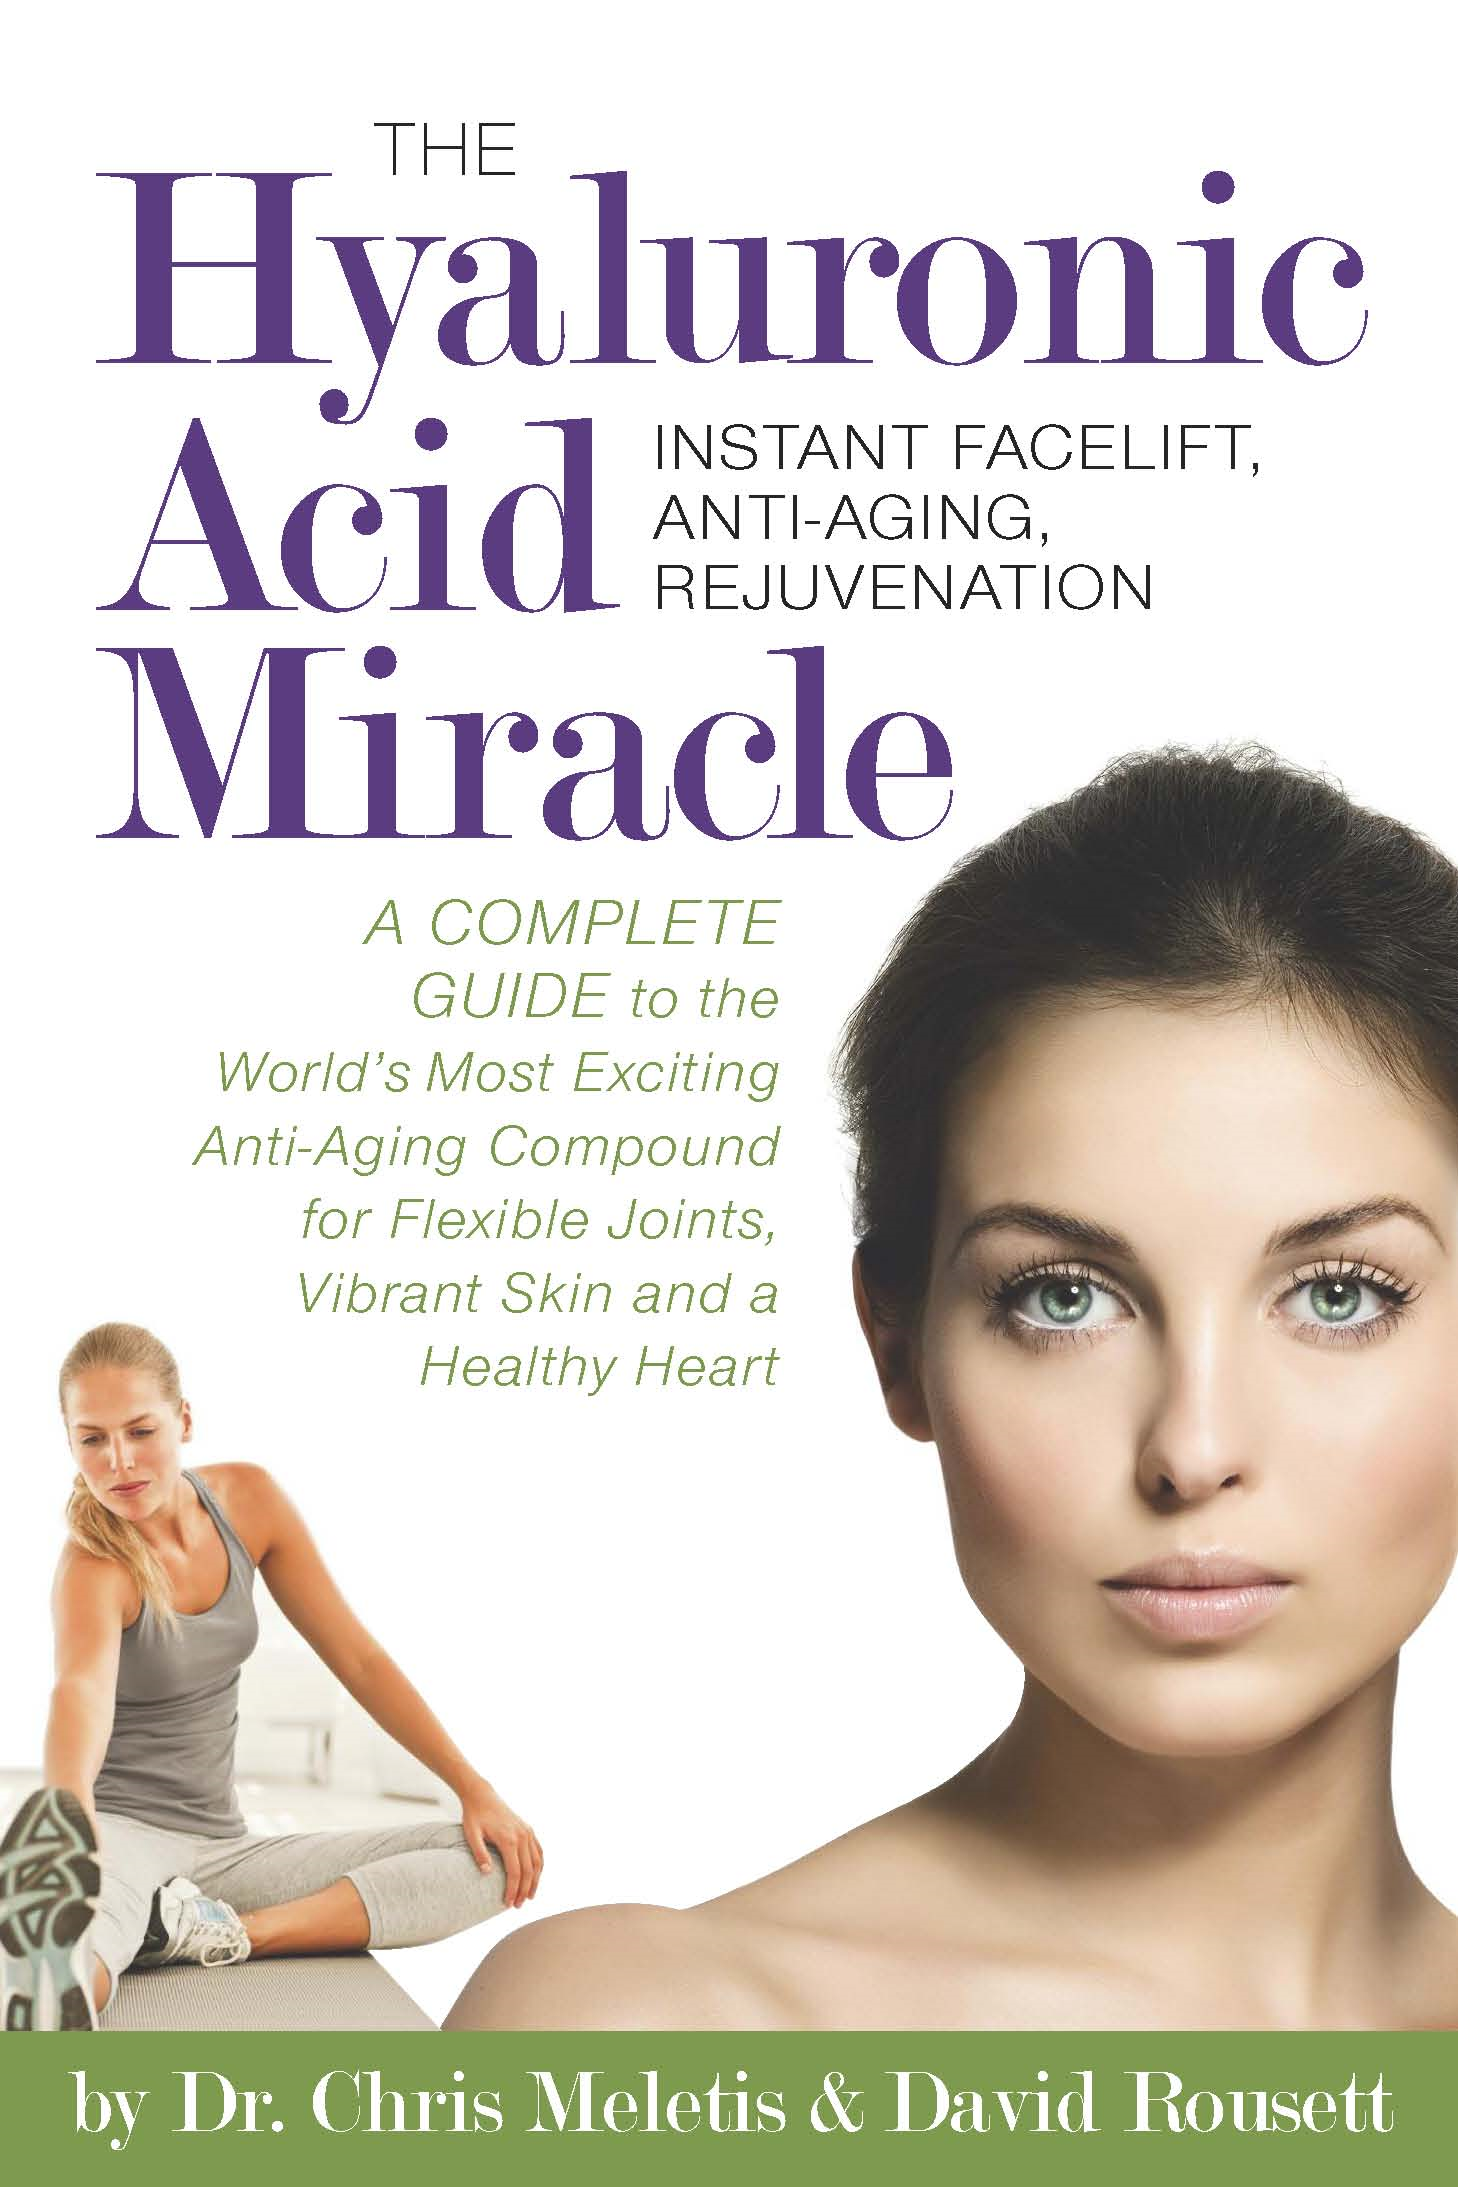 The Hyaluronic Acid Miracle: A Complete Guide to the World's Most Exciting Anti-Aging Compound for Flexible Joints, Vibrant Skin